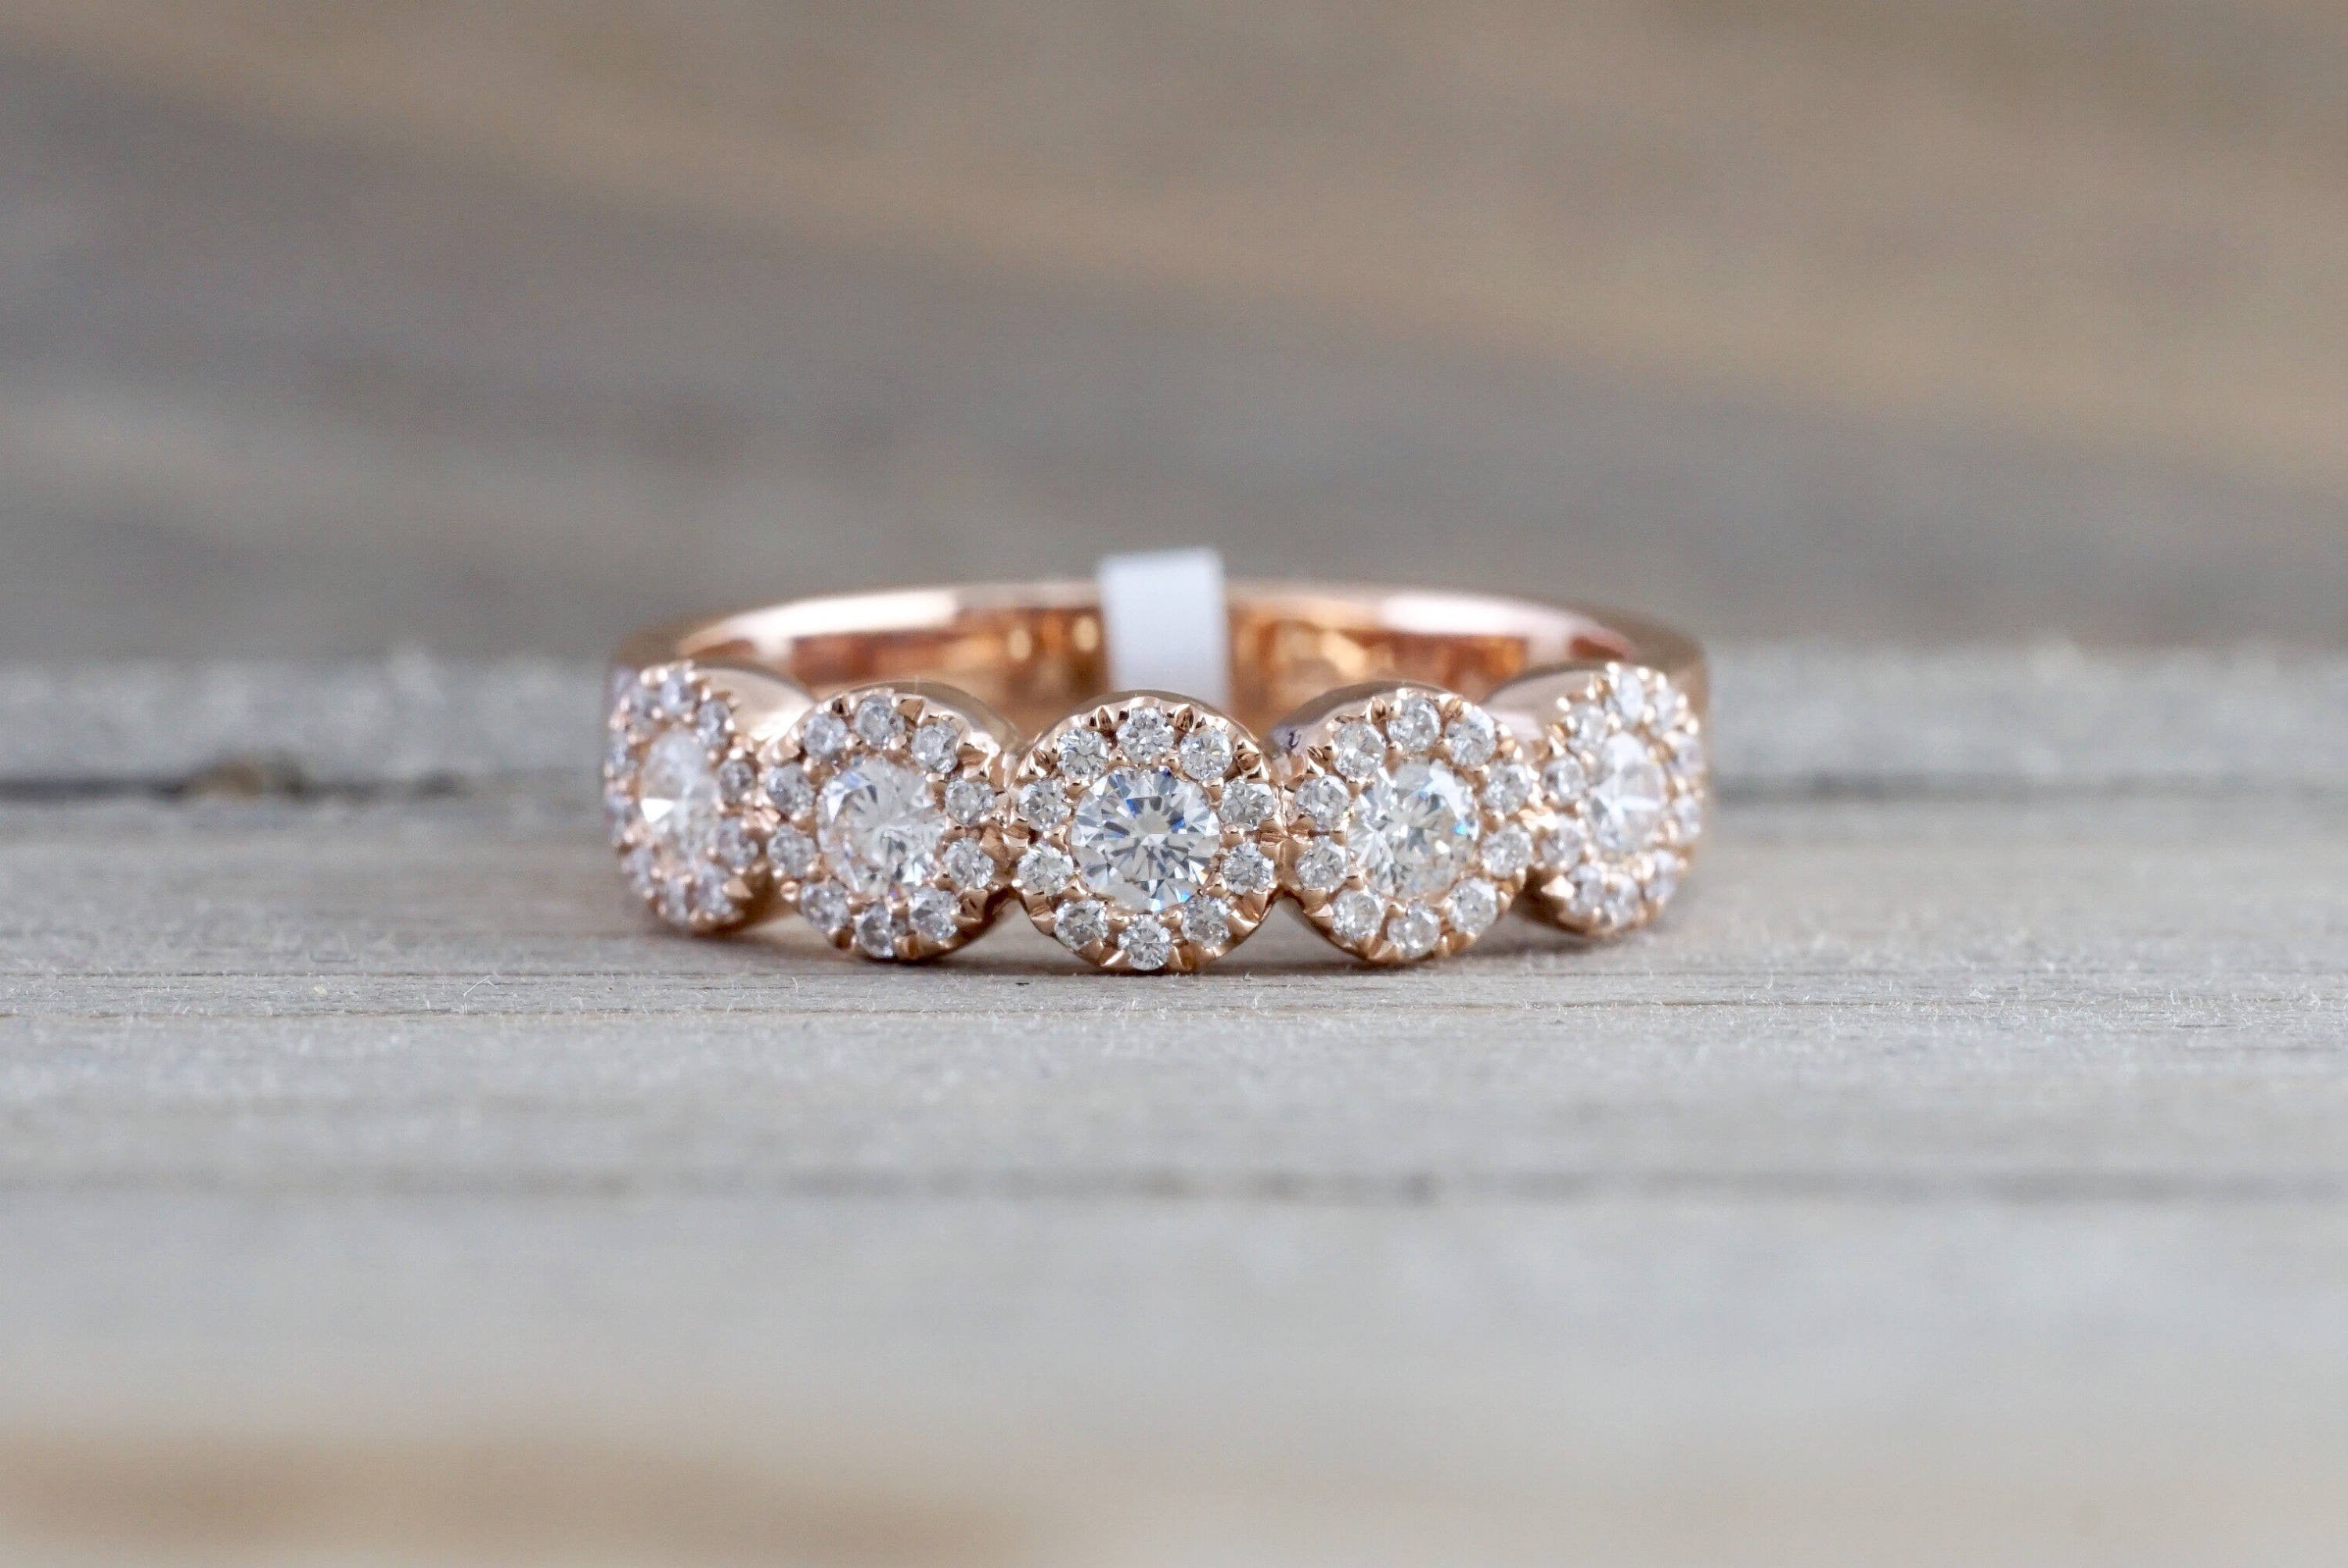 wedding bands band cushion halo with want ring i s engagement the but rose diamond gold two pin perfect